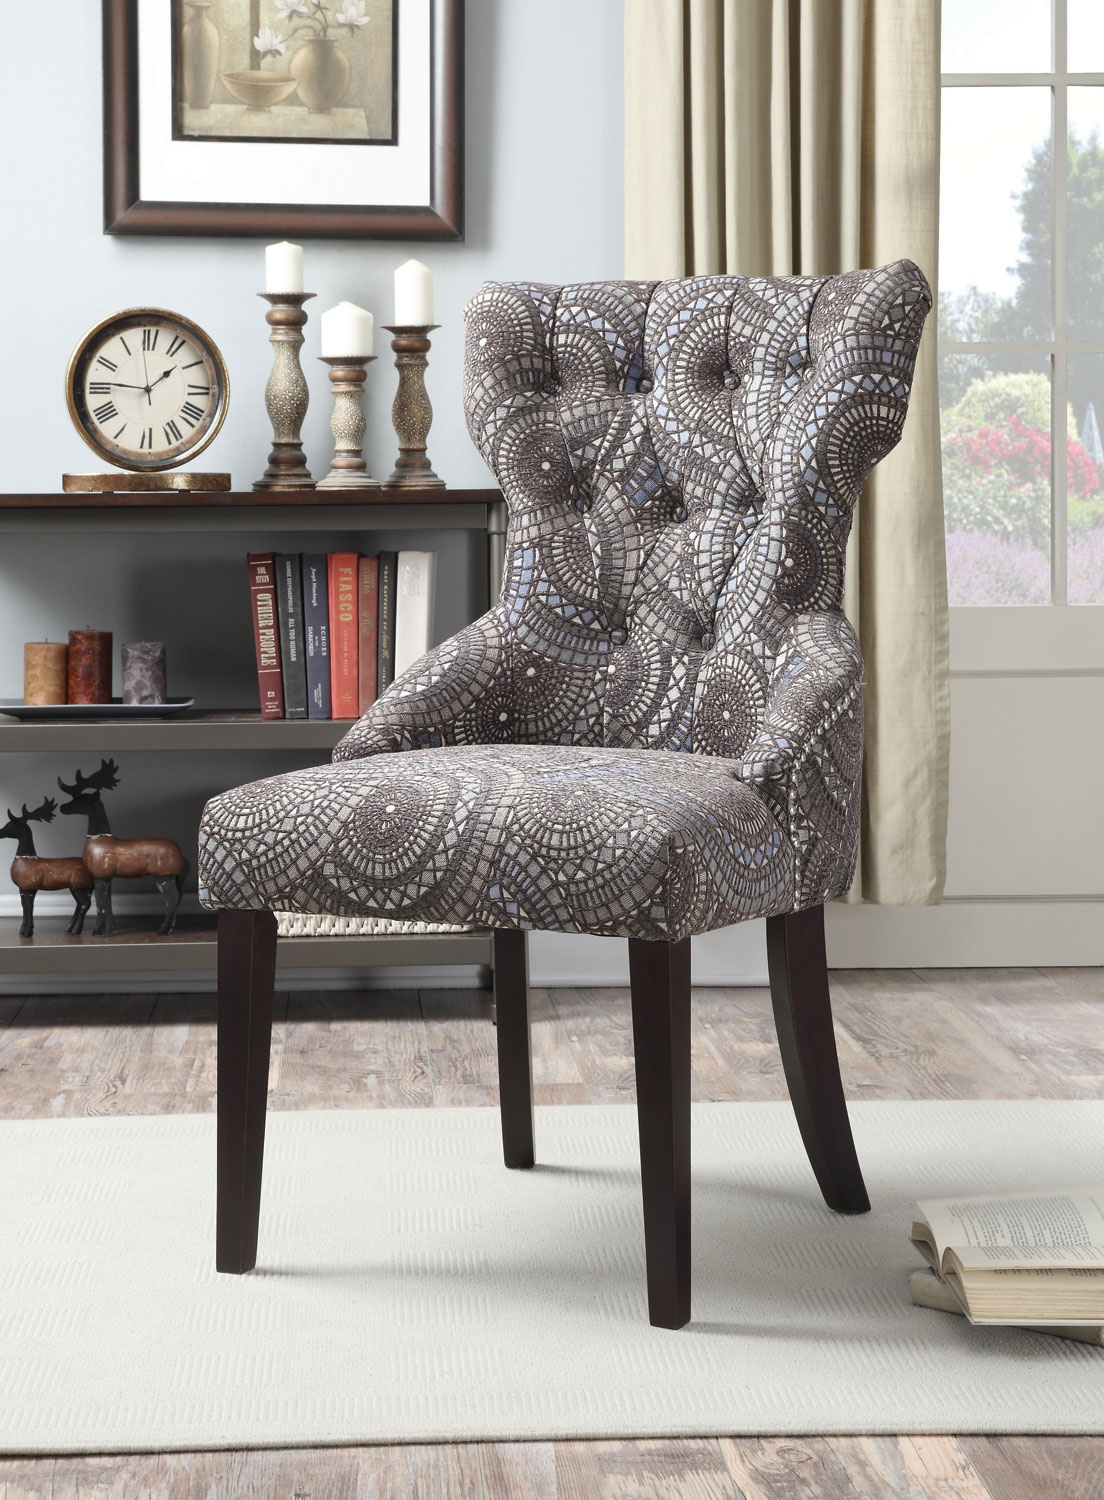 With Button Tufted Back, This Accent Chair Upholstered In